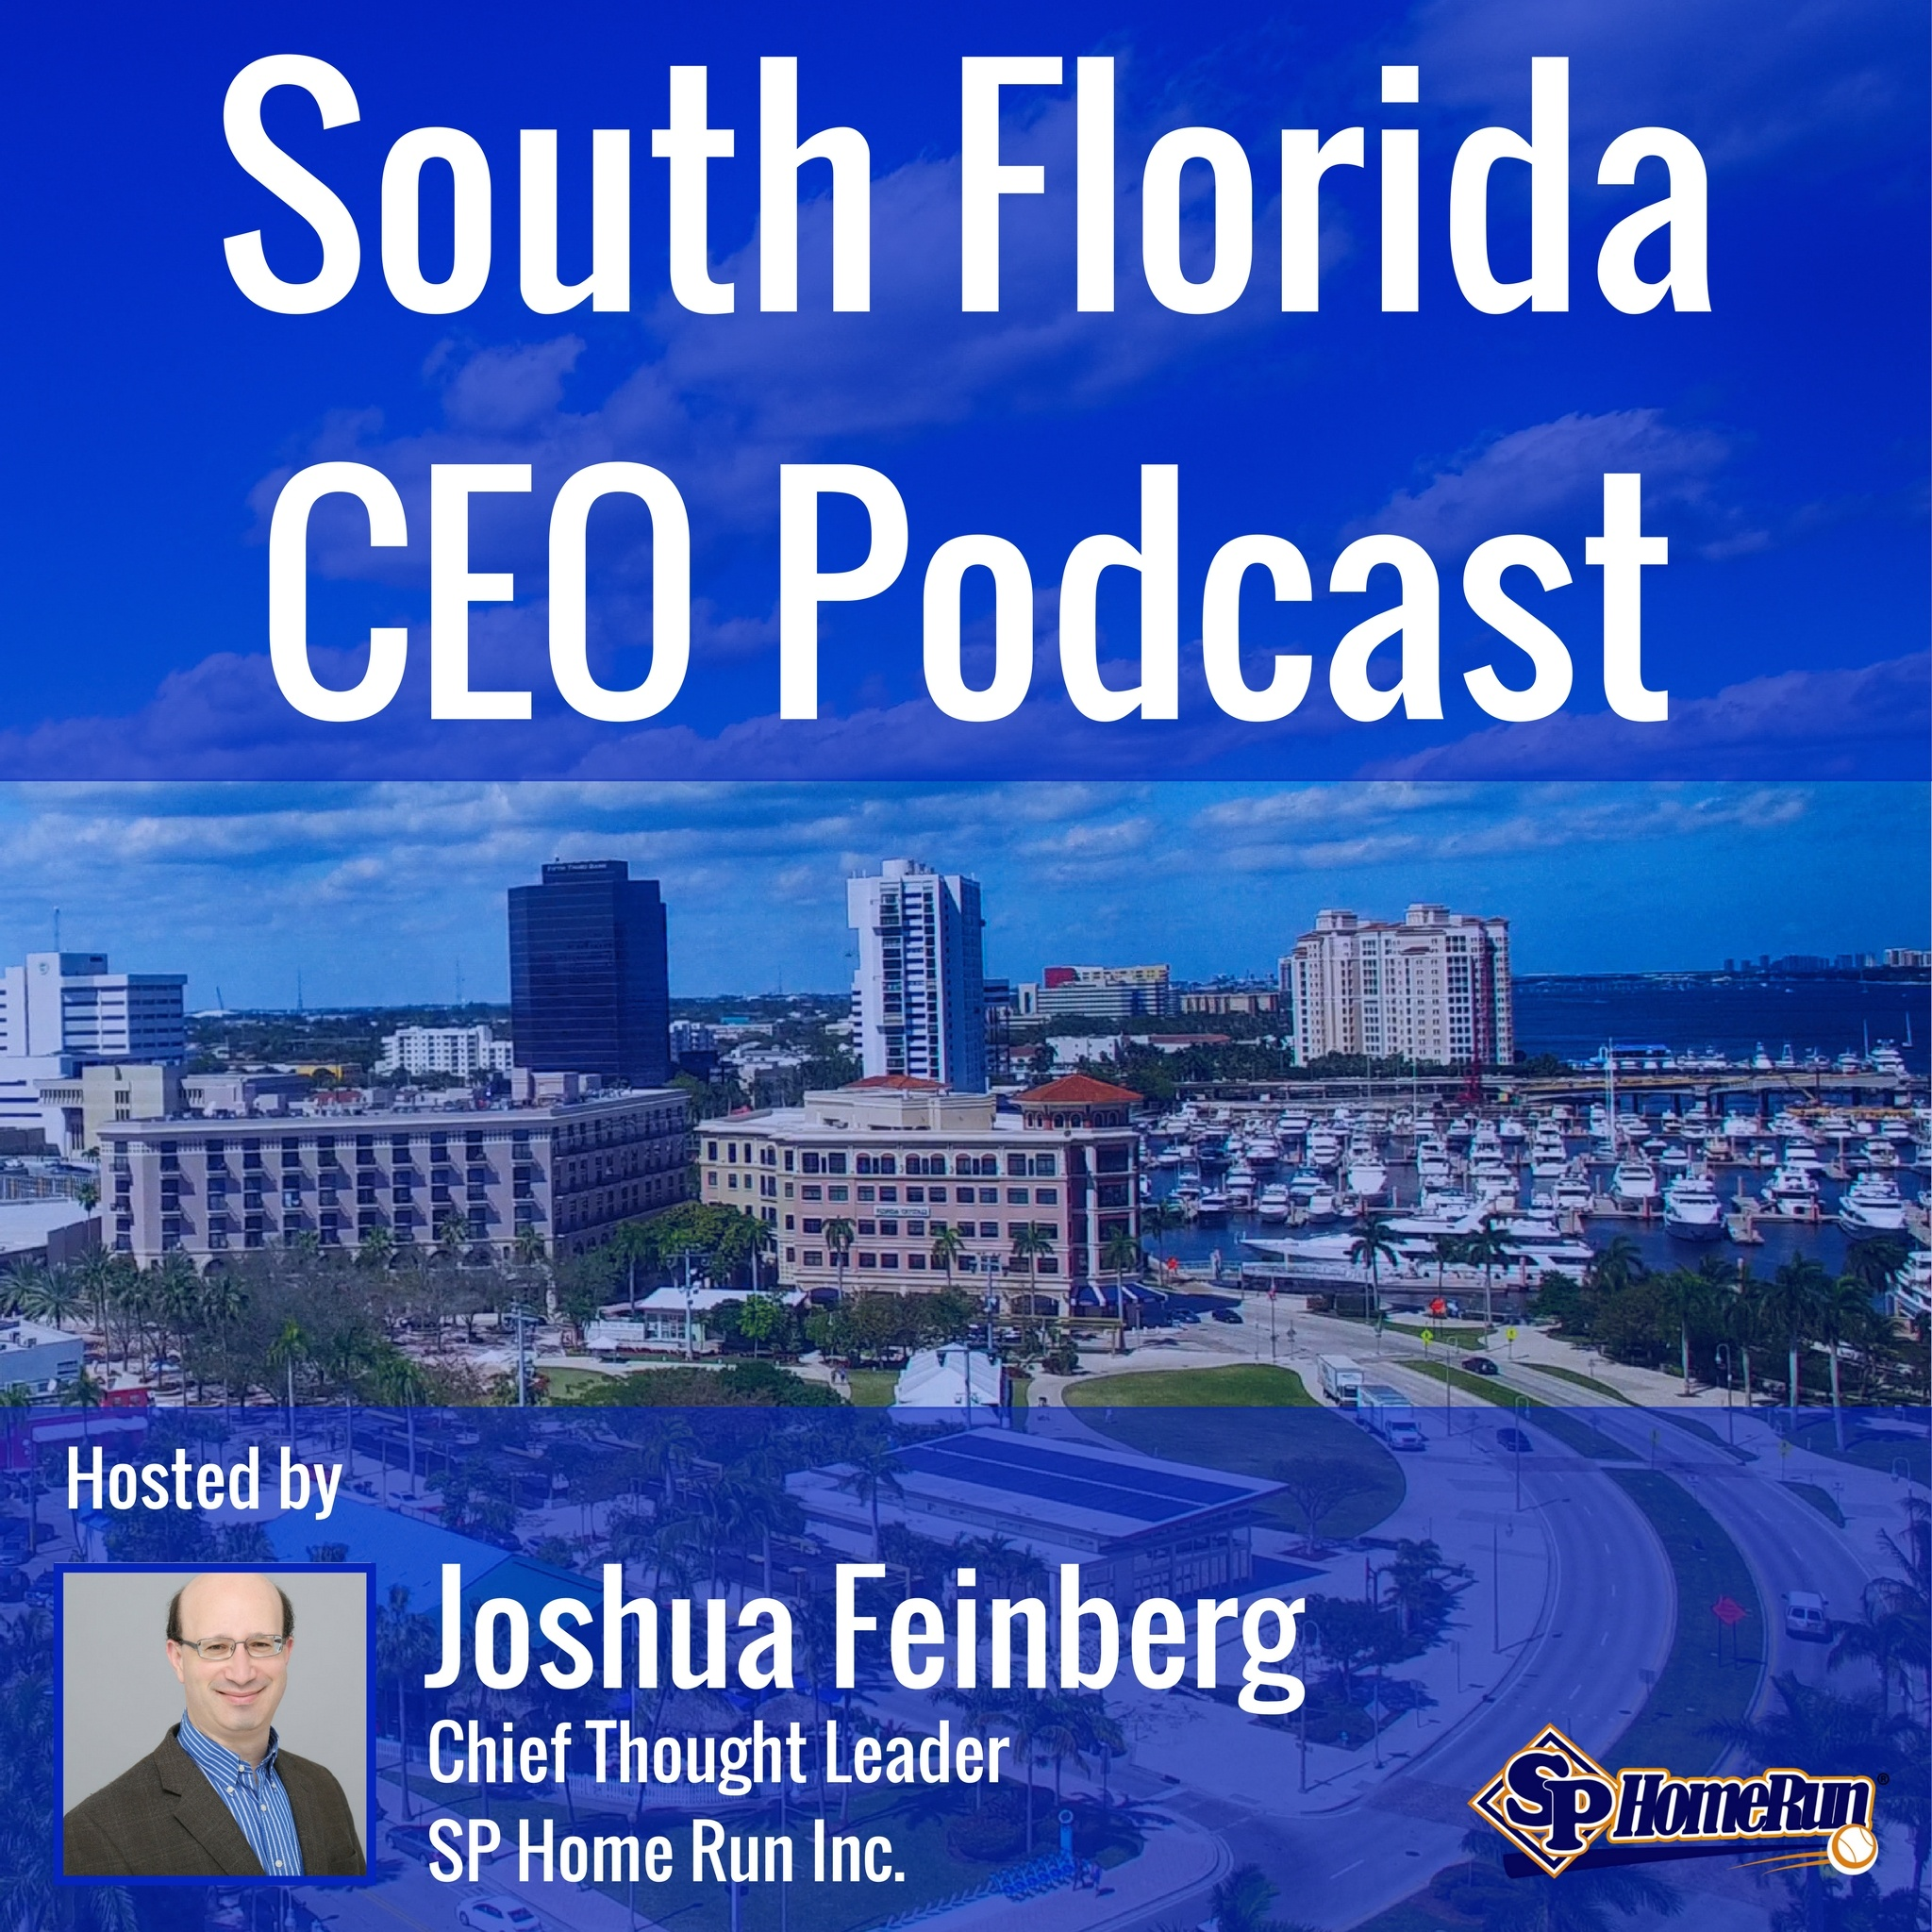 South Florida CEO Podcast